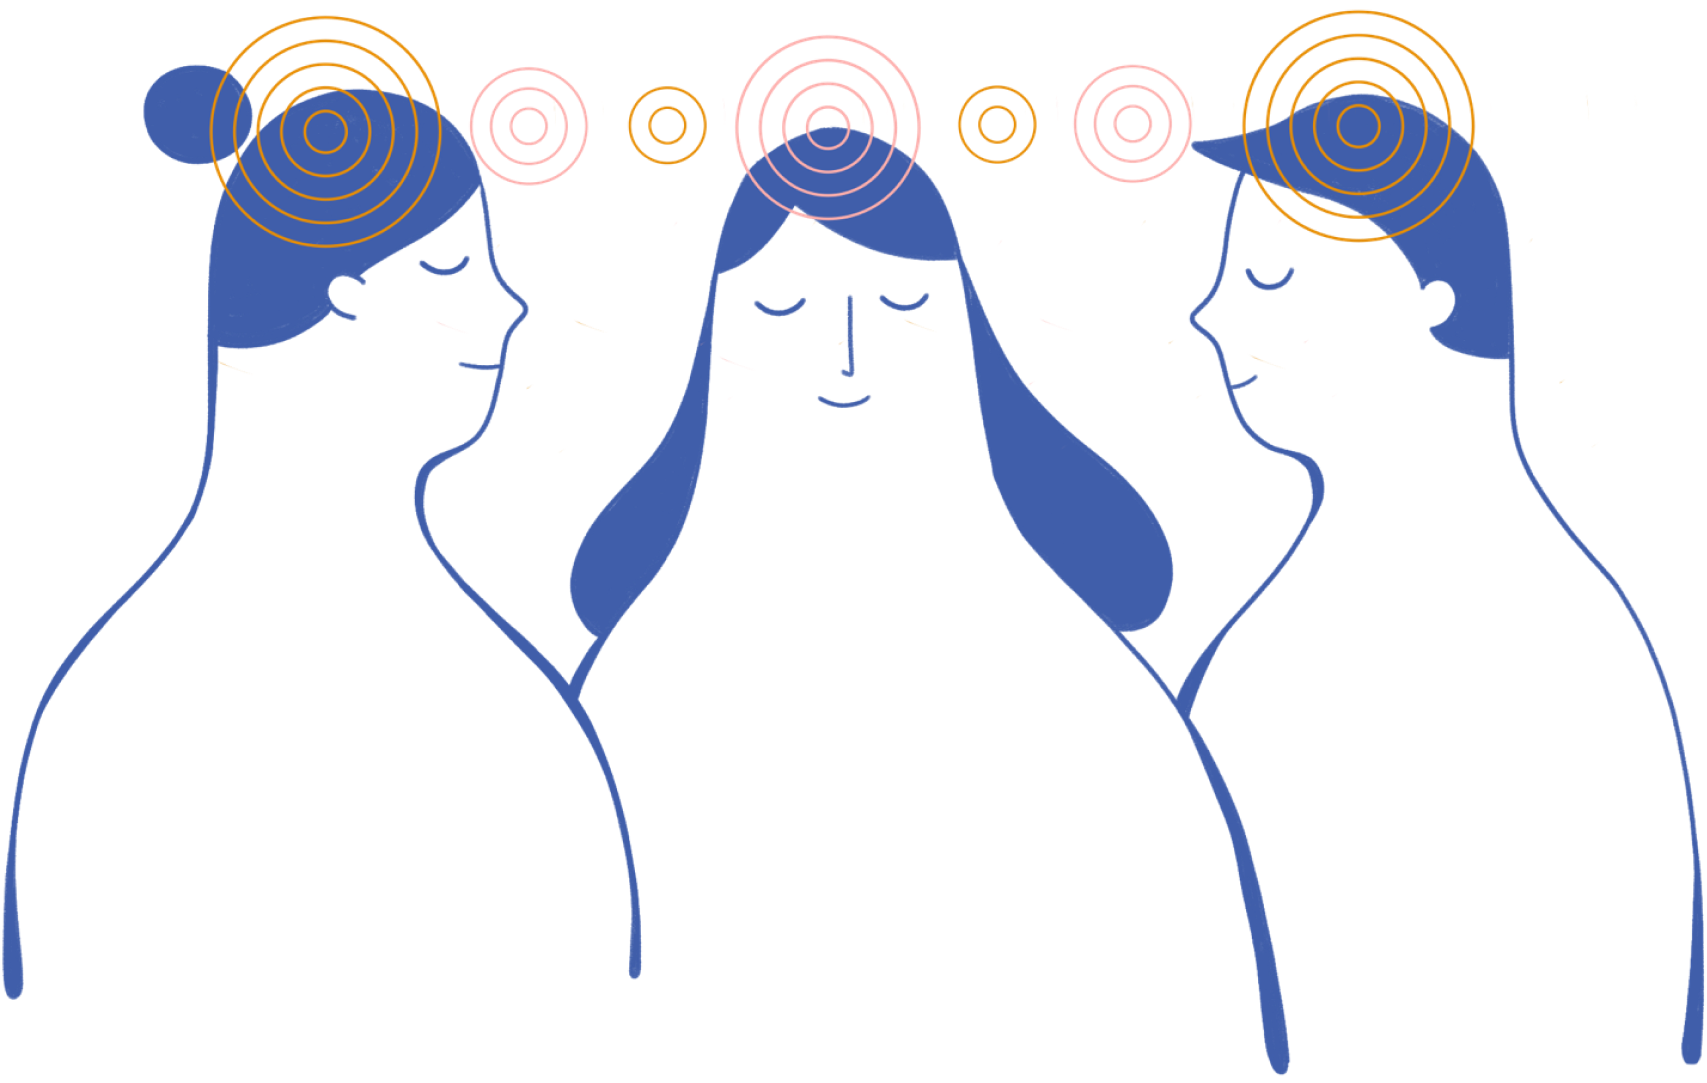 stylized drawing of three calm people with circles connecting their minds